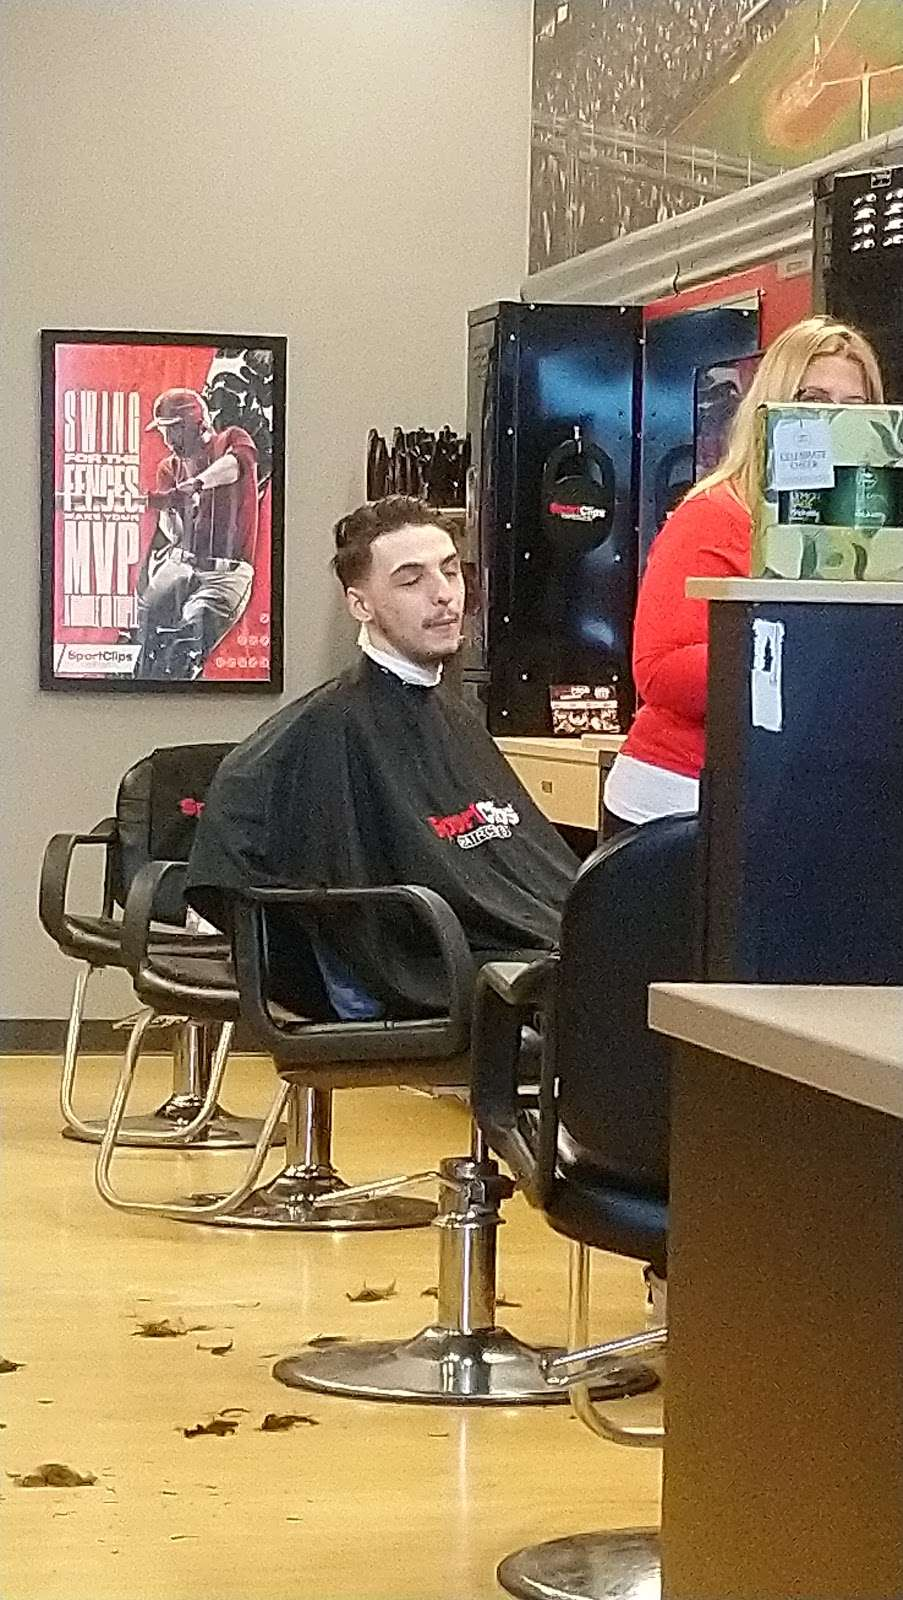 Sport Clips Haircuts of Alvin Center - hair care    Photo 5 of 7   Address: 252 N Bypass 35 Suite B, Alvin, TX 77511, USA   Phone: (281) 585-9600